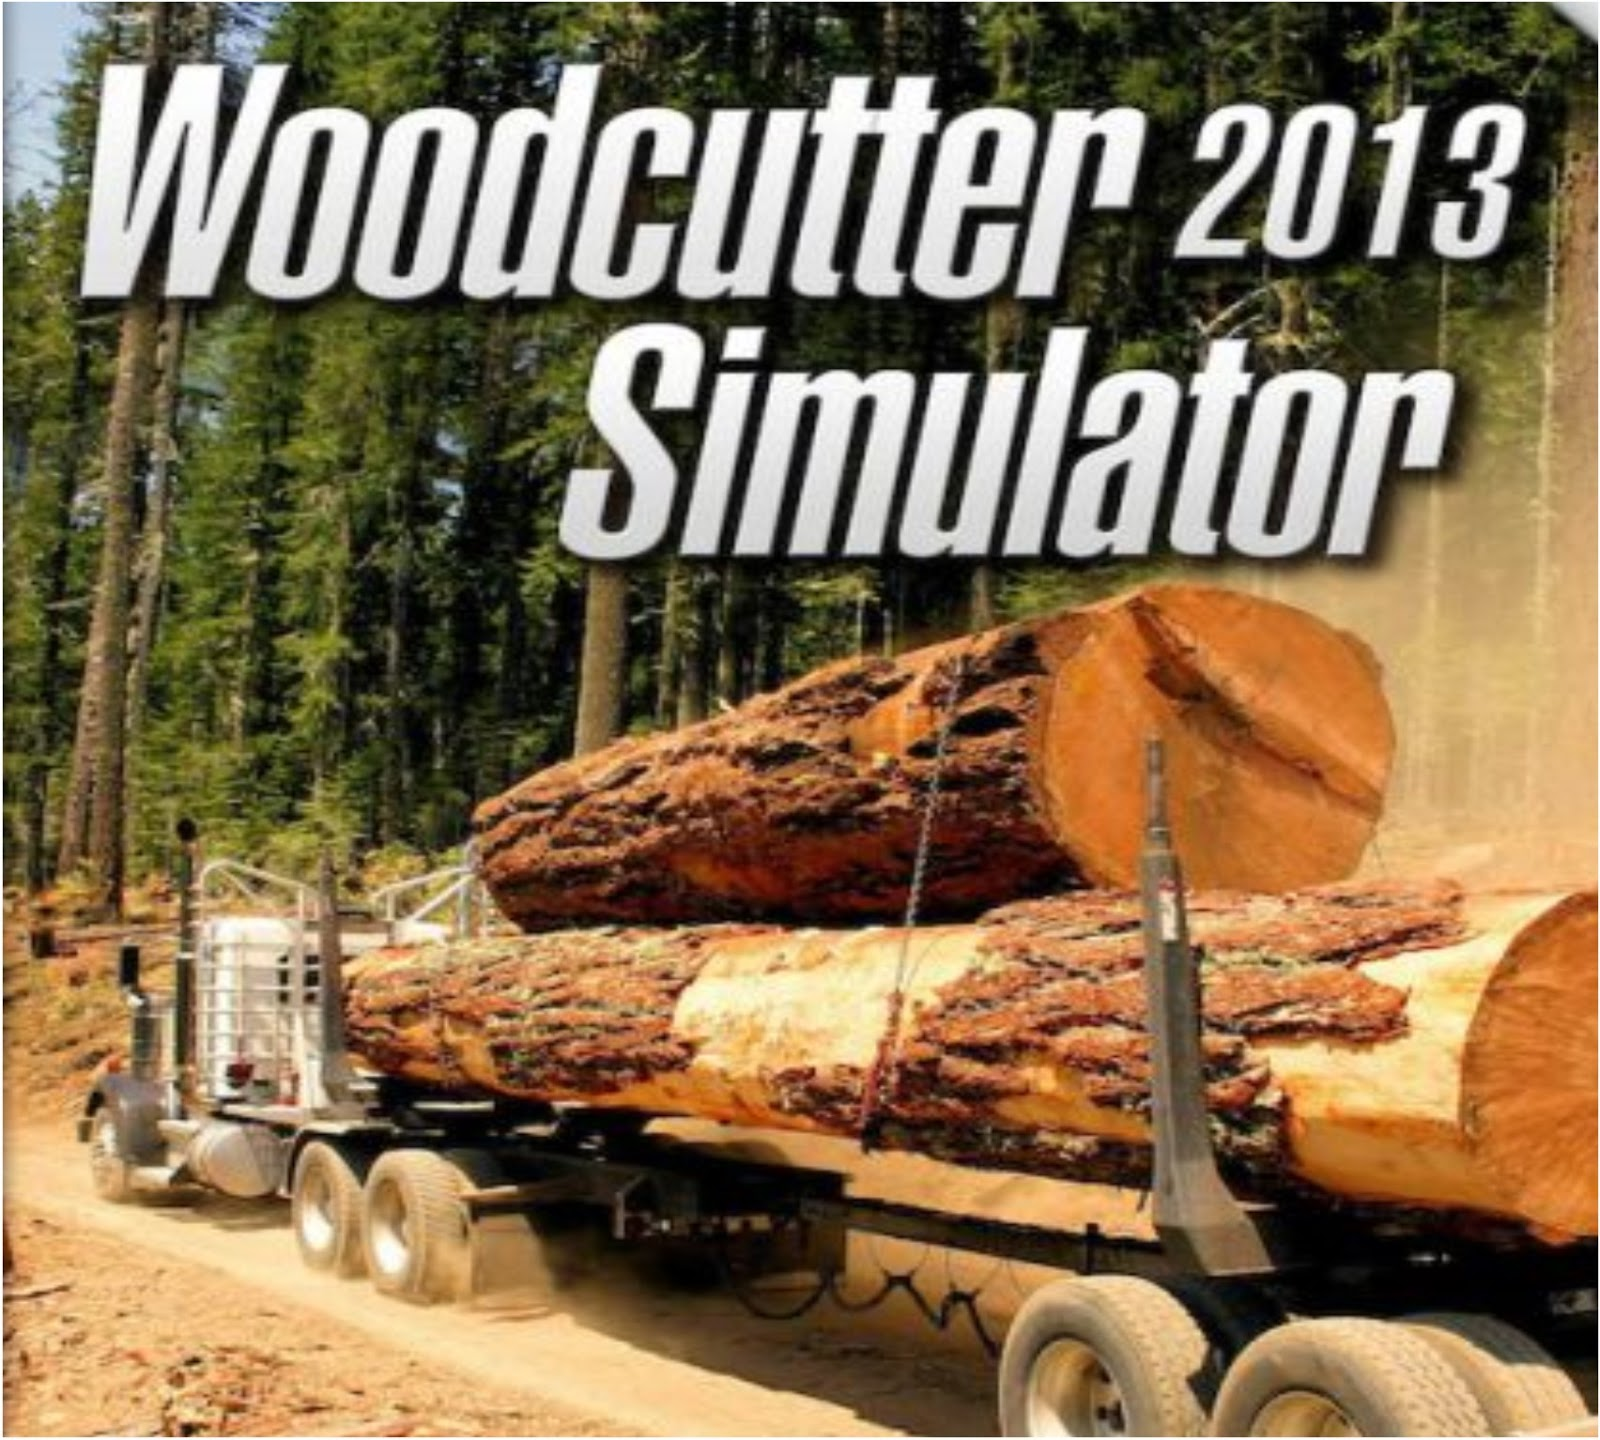 Woodcutter Simulator 2013 PC